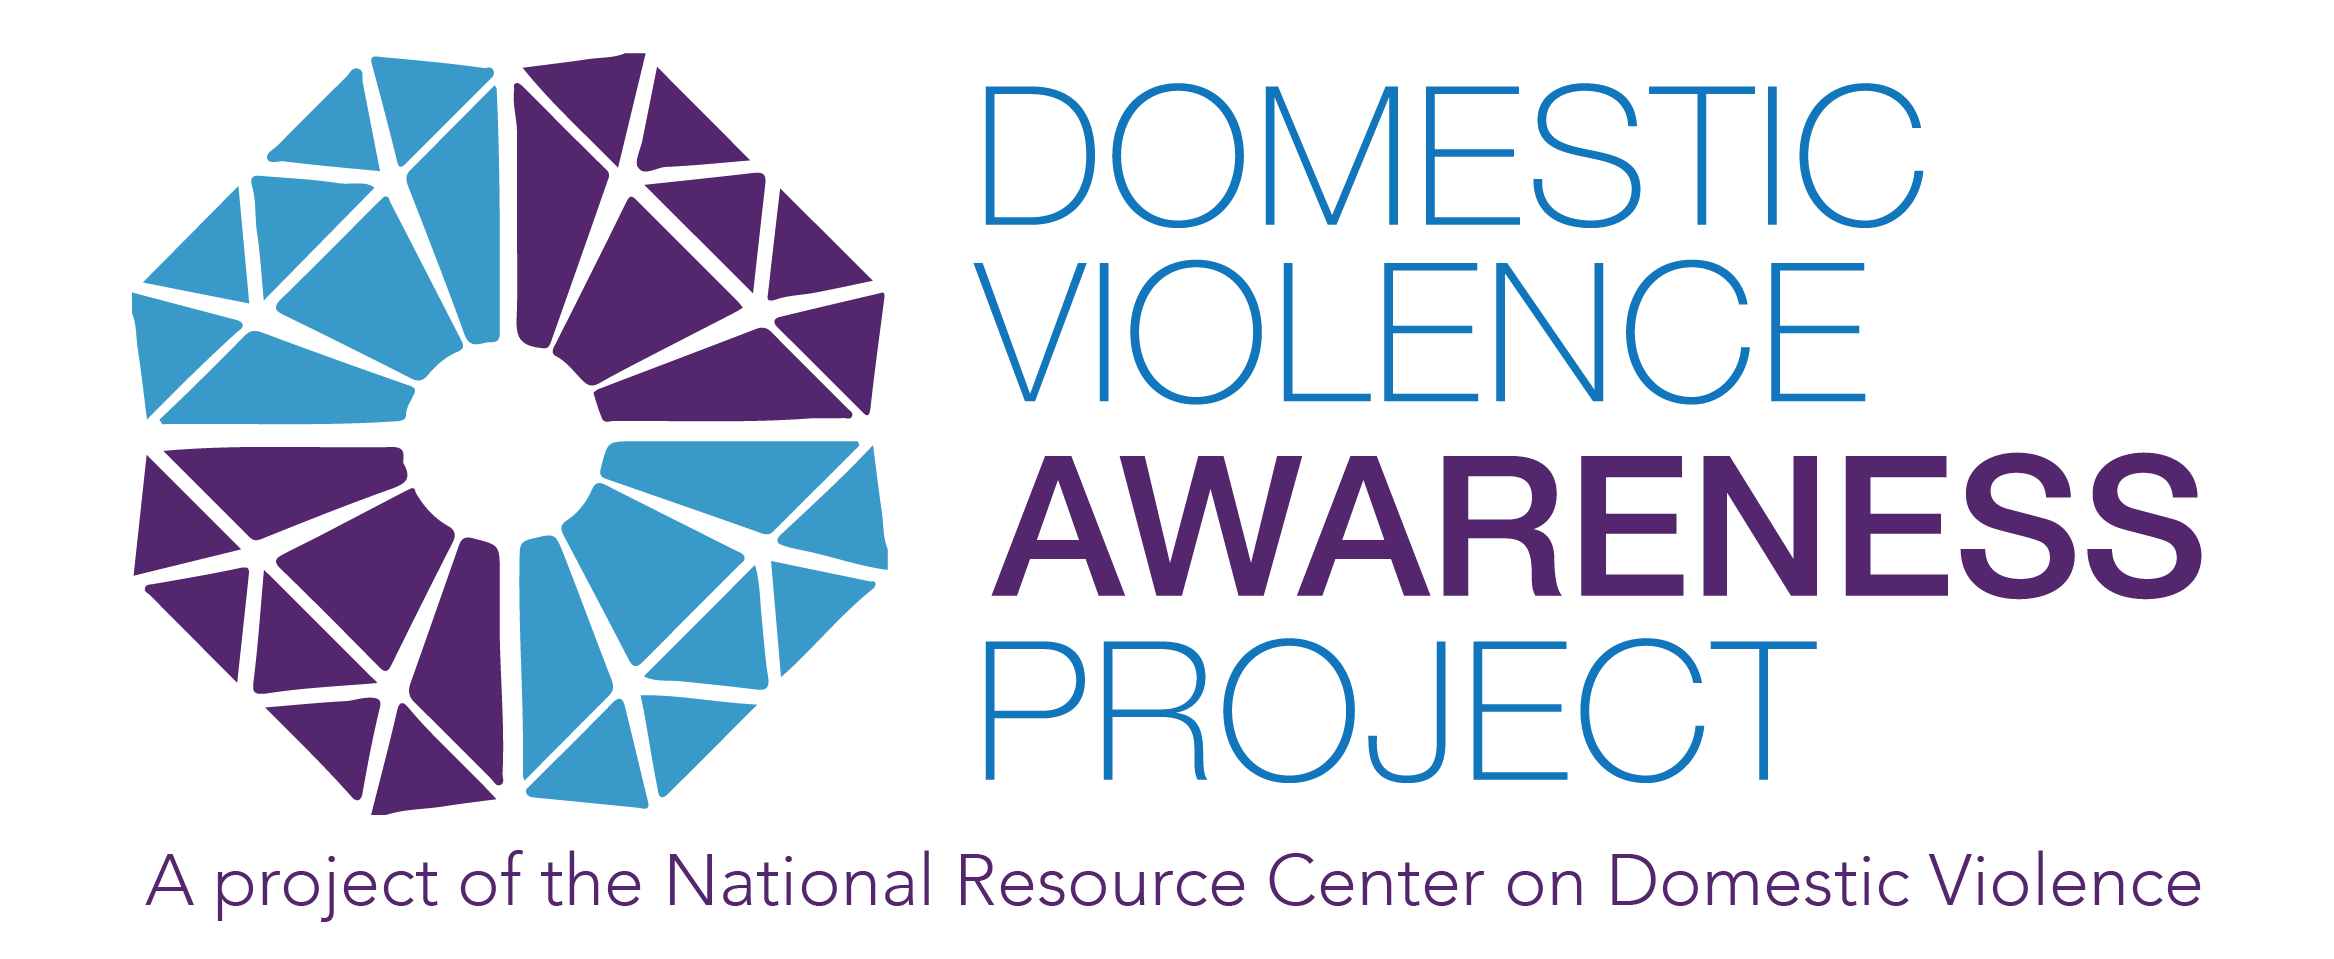 Domestic Violence Awareness Project logo